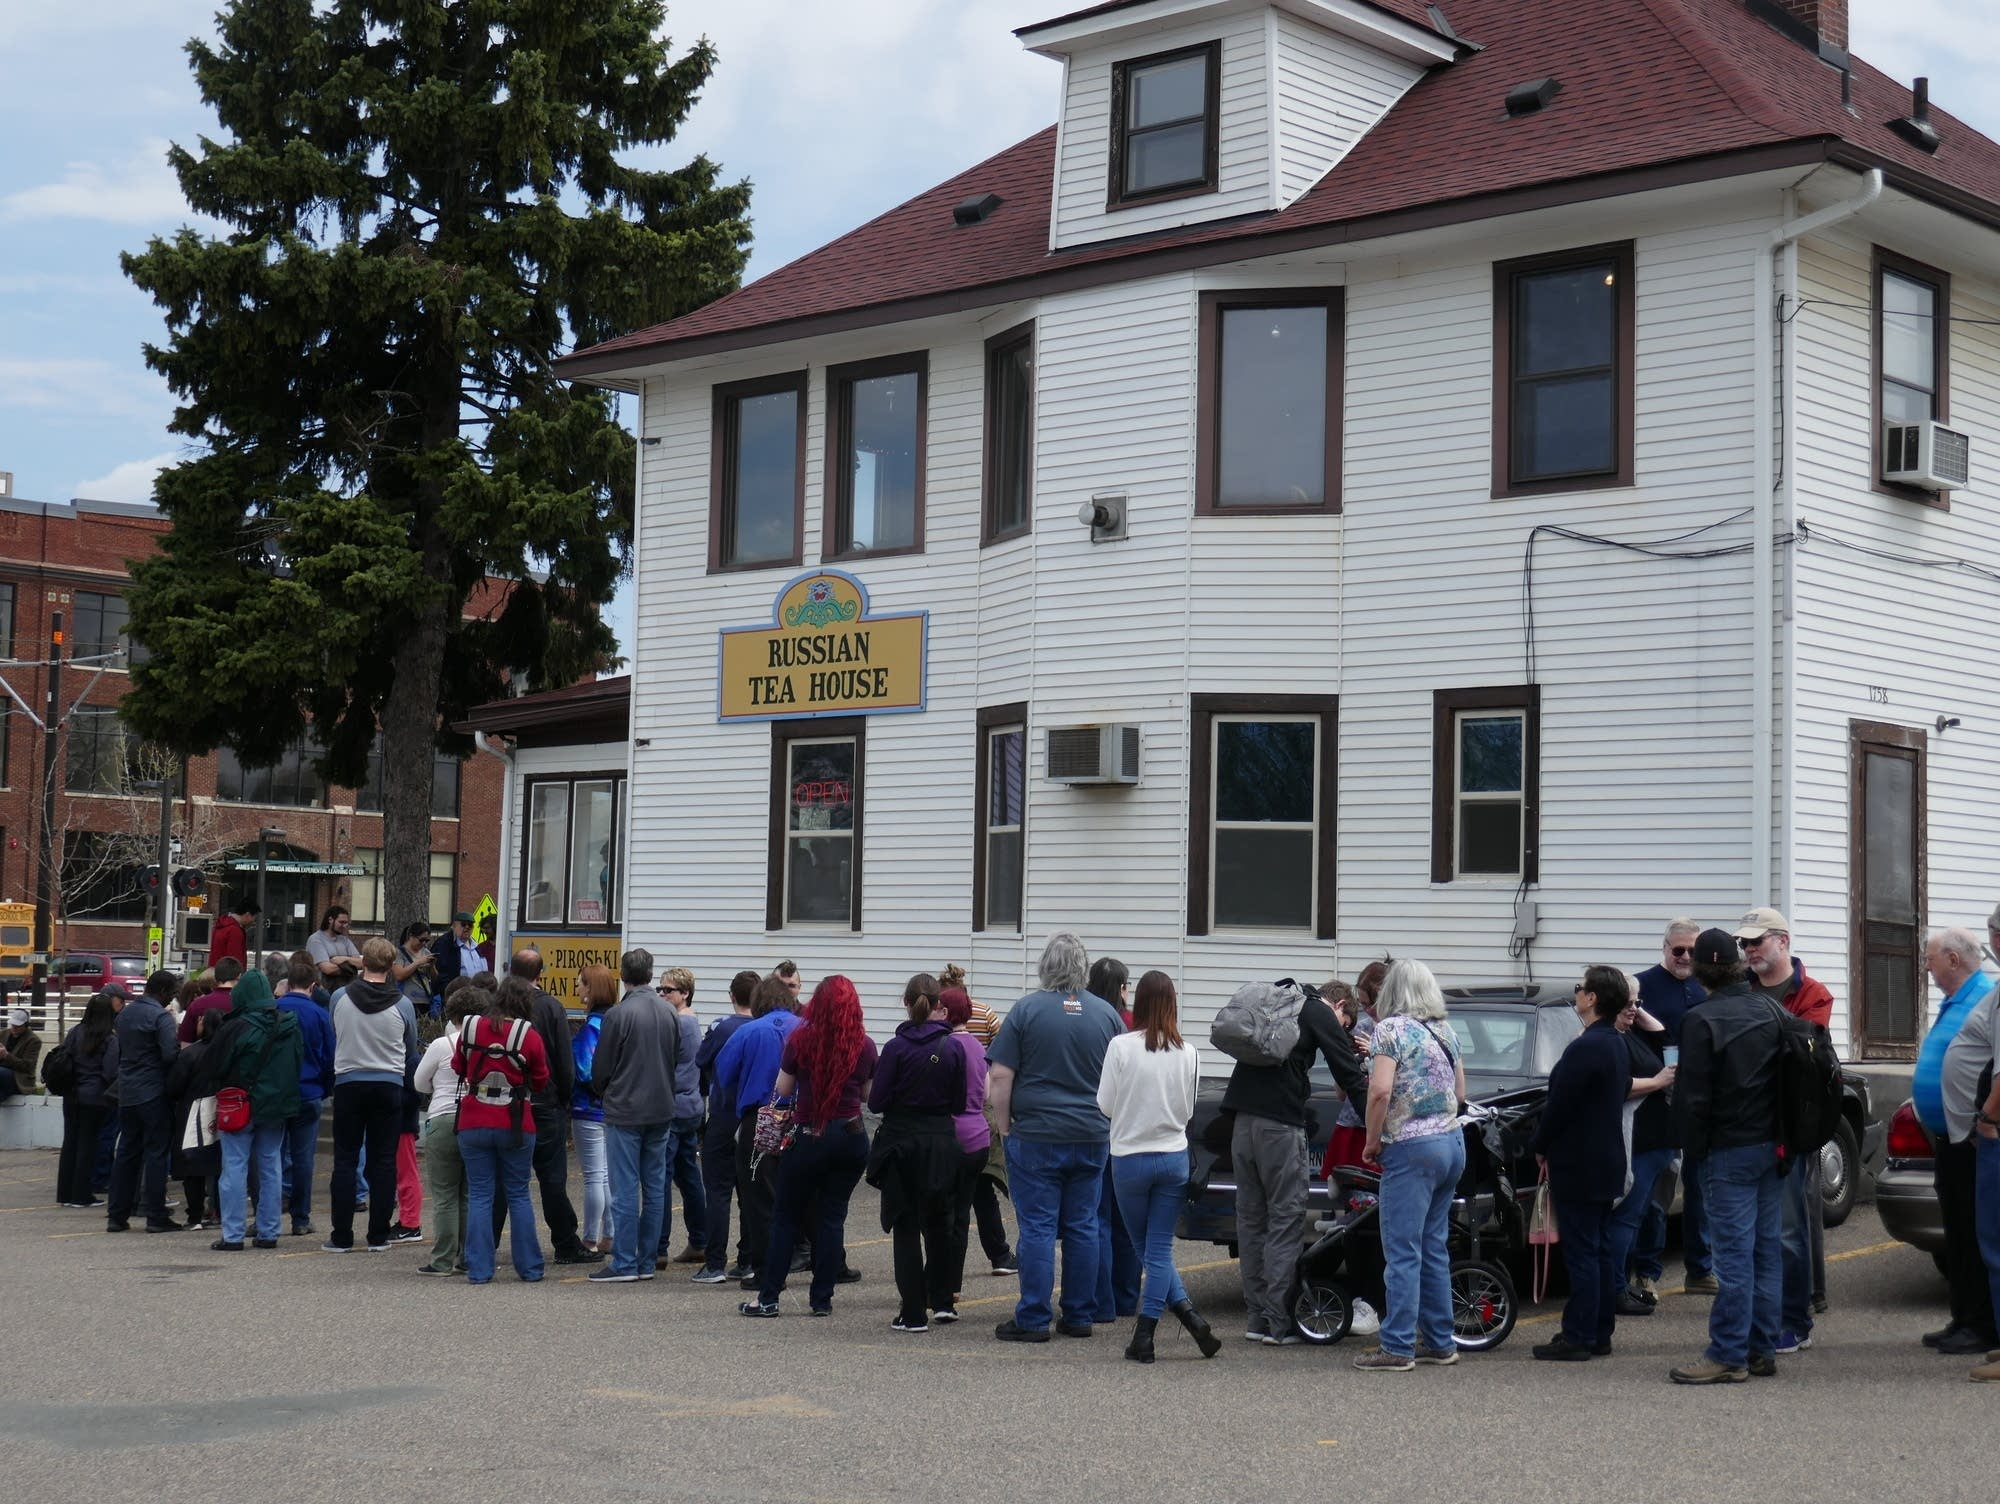 Customers wait in line in front of the Russian Tea House